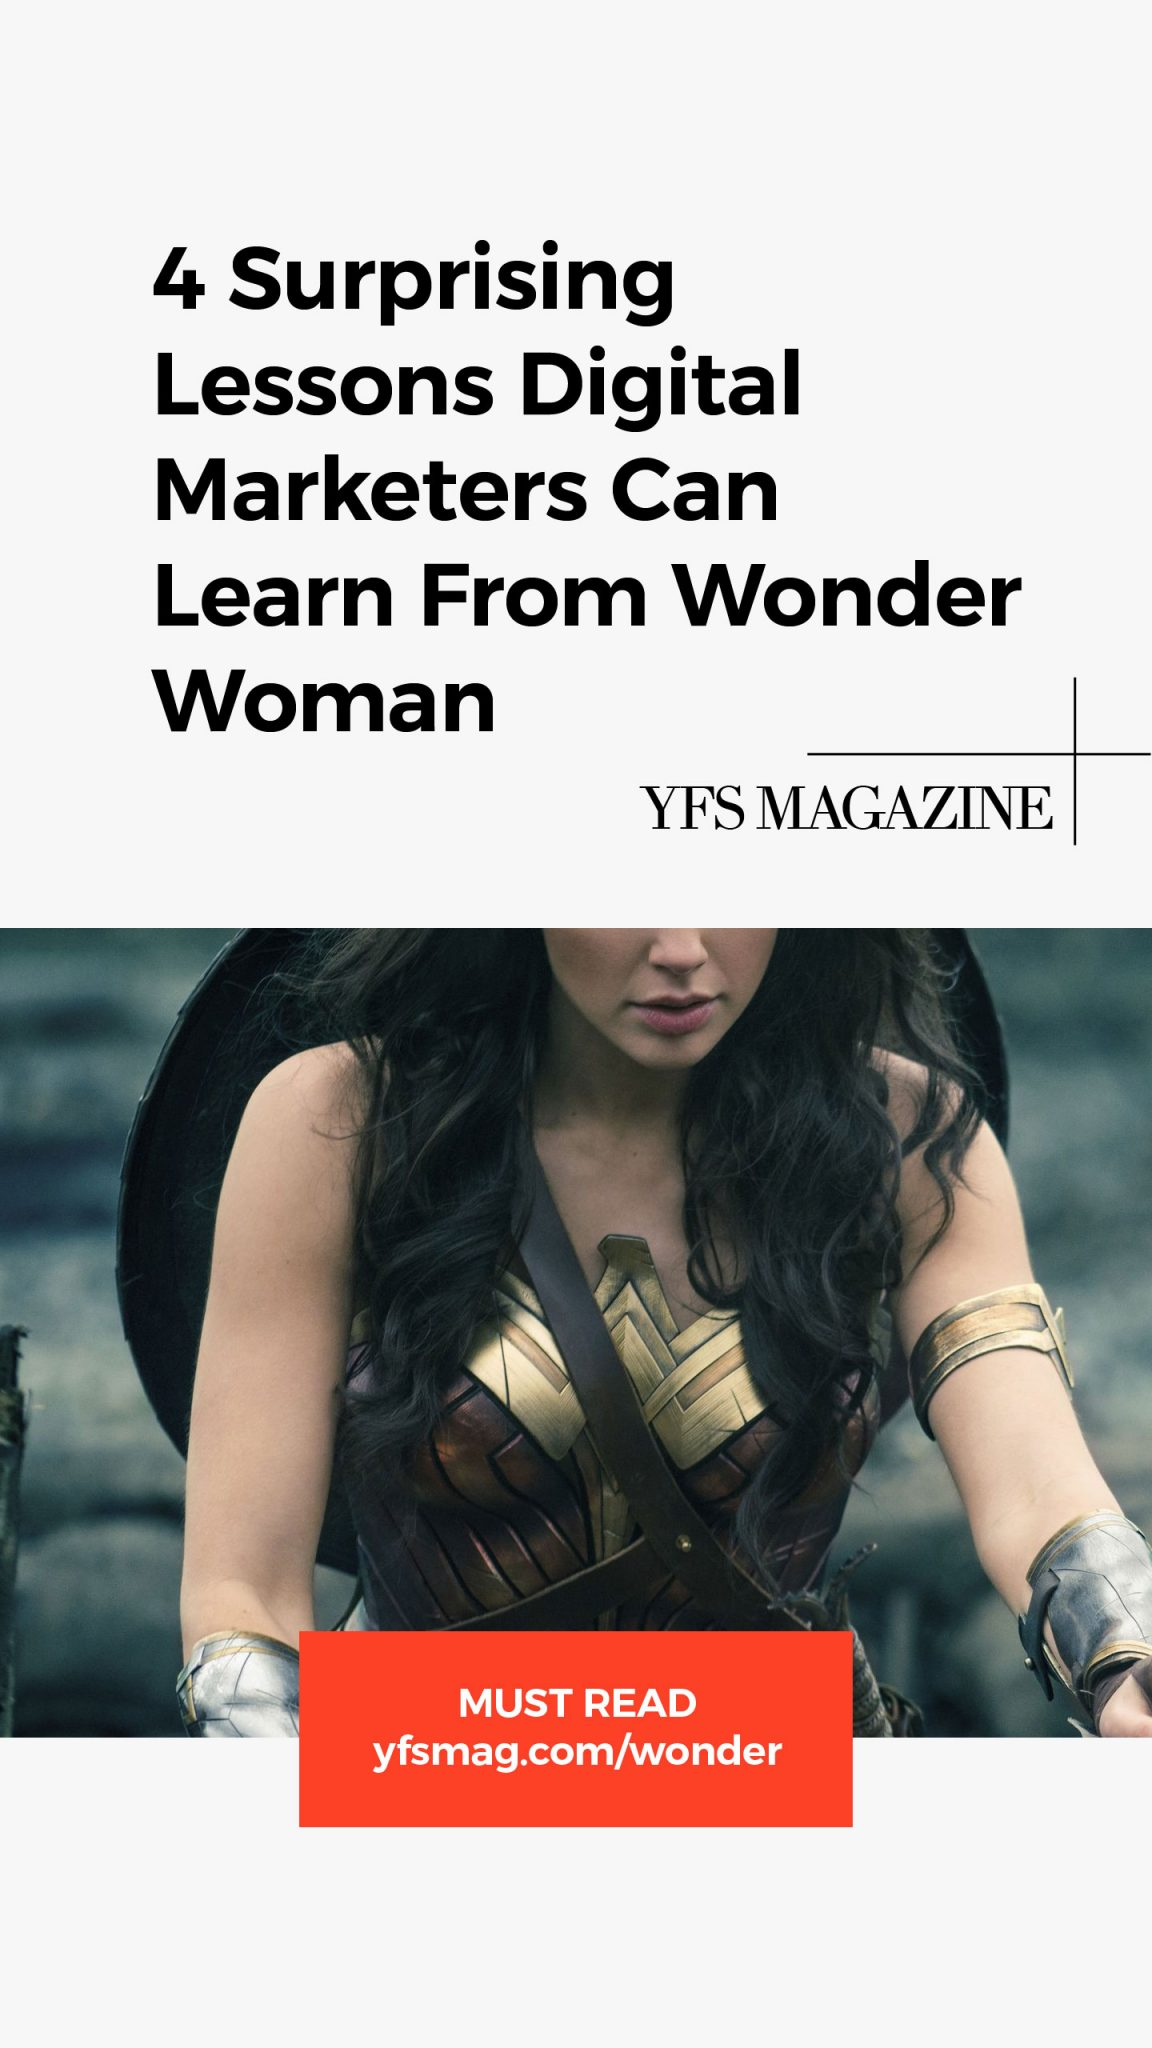 What does Wonder Woman have to do with the challenges faced by digital marketers and entrepreneurs? You may be surprised.